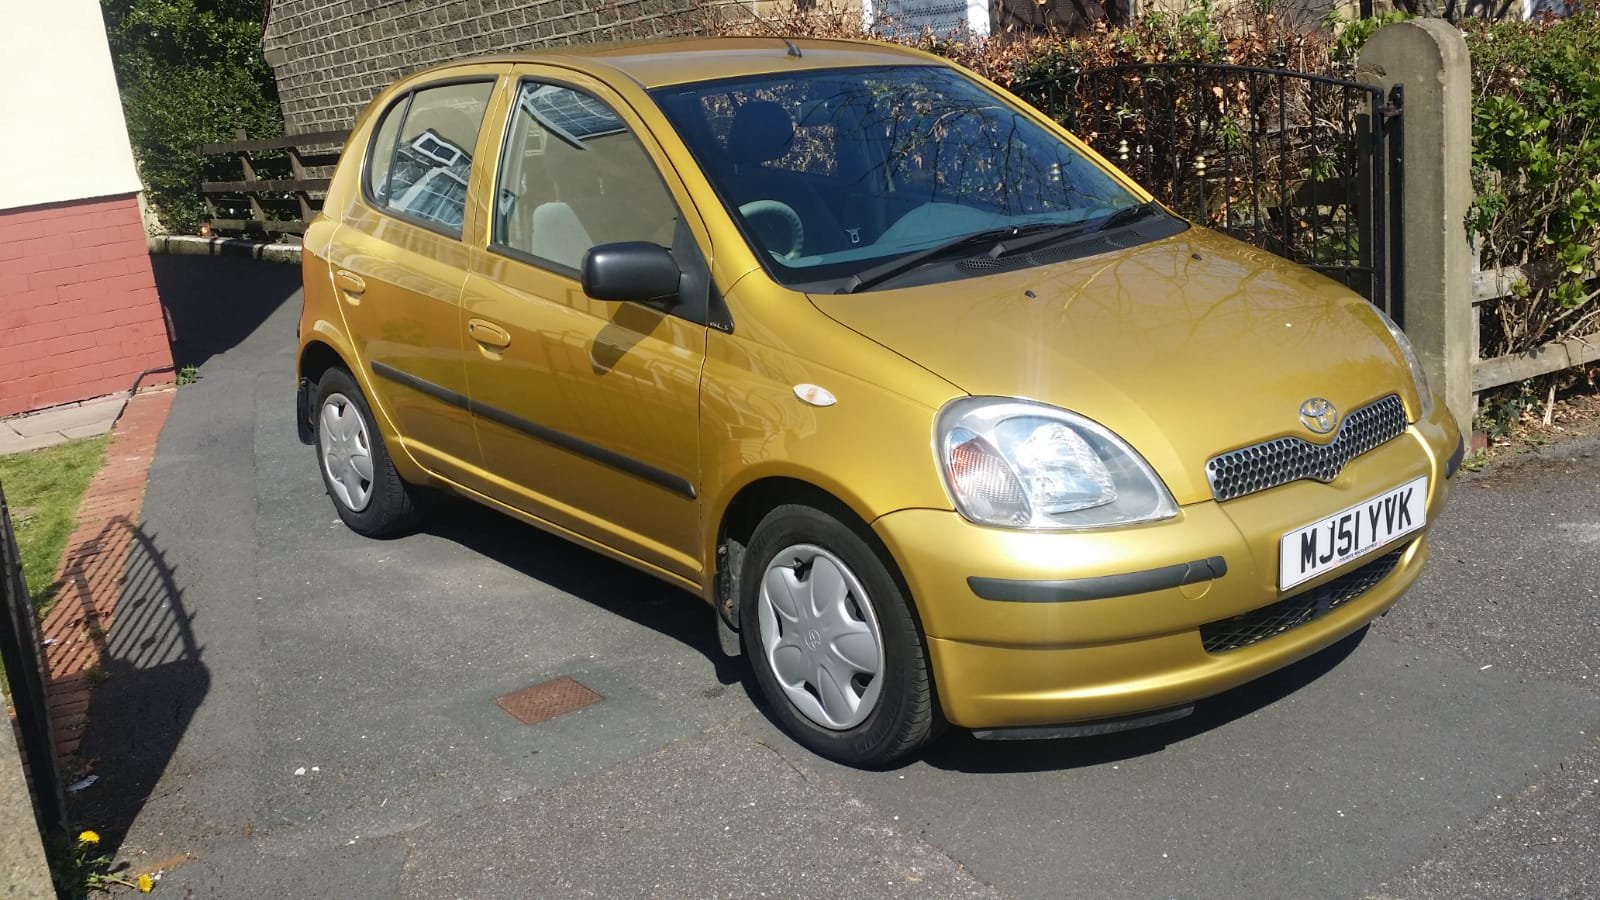 2002 Toyota Yaris 1.3 Petrol 1 Owner 33k Miles 5dr For Sale (picture 1 of 6)